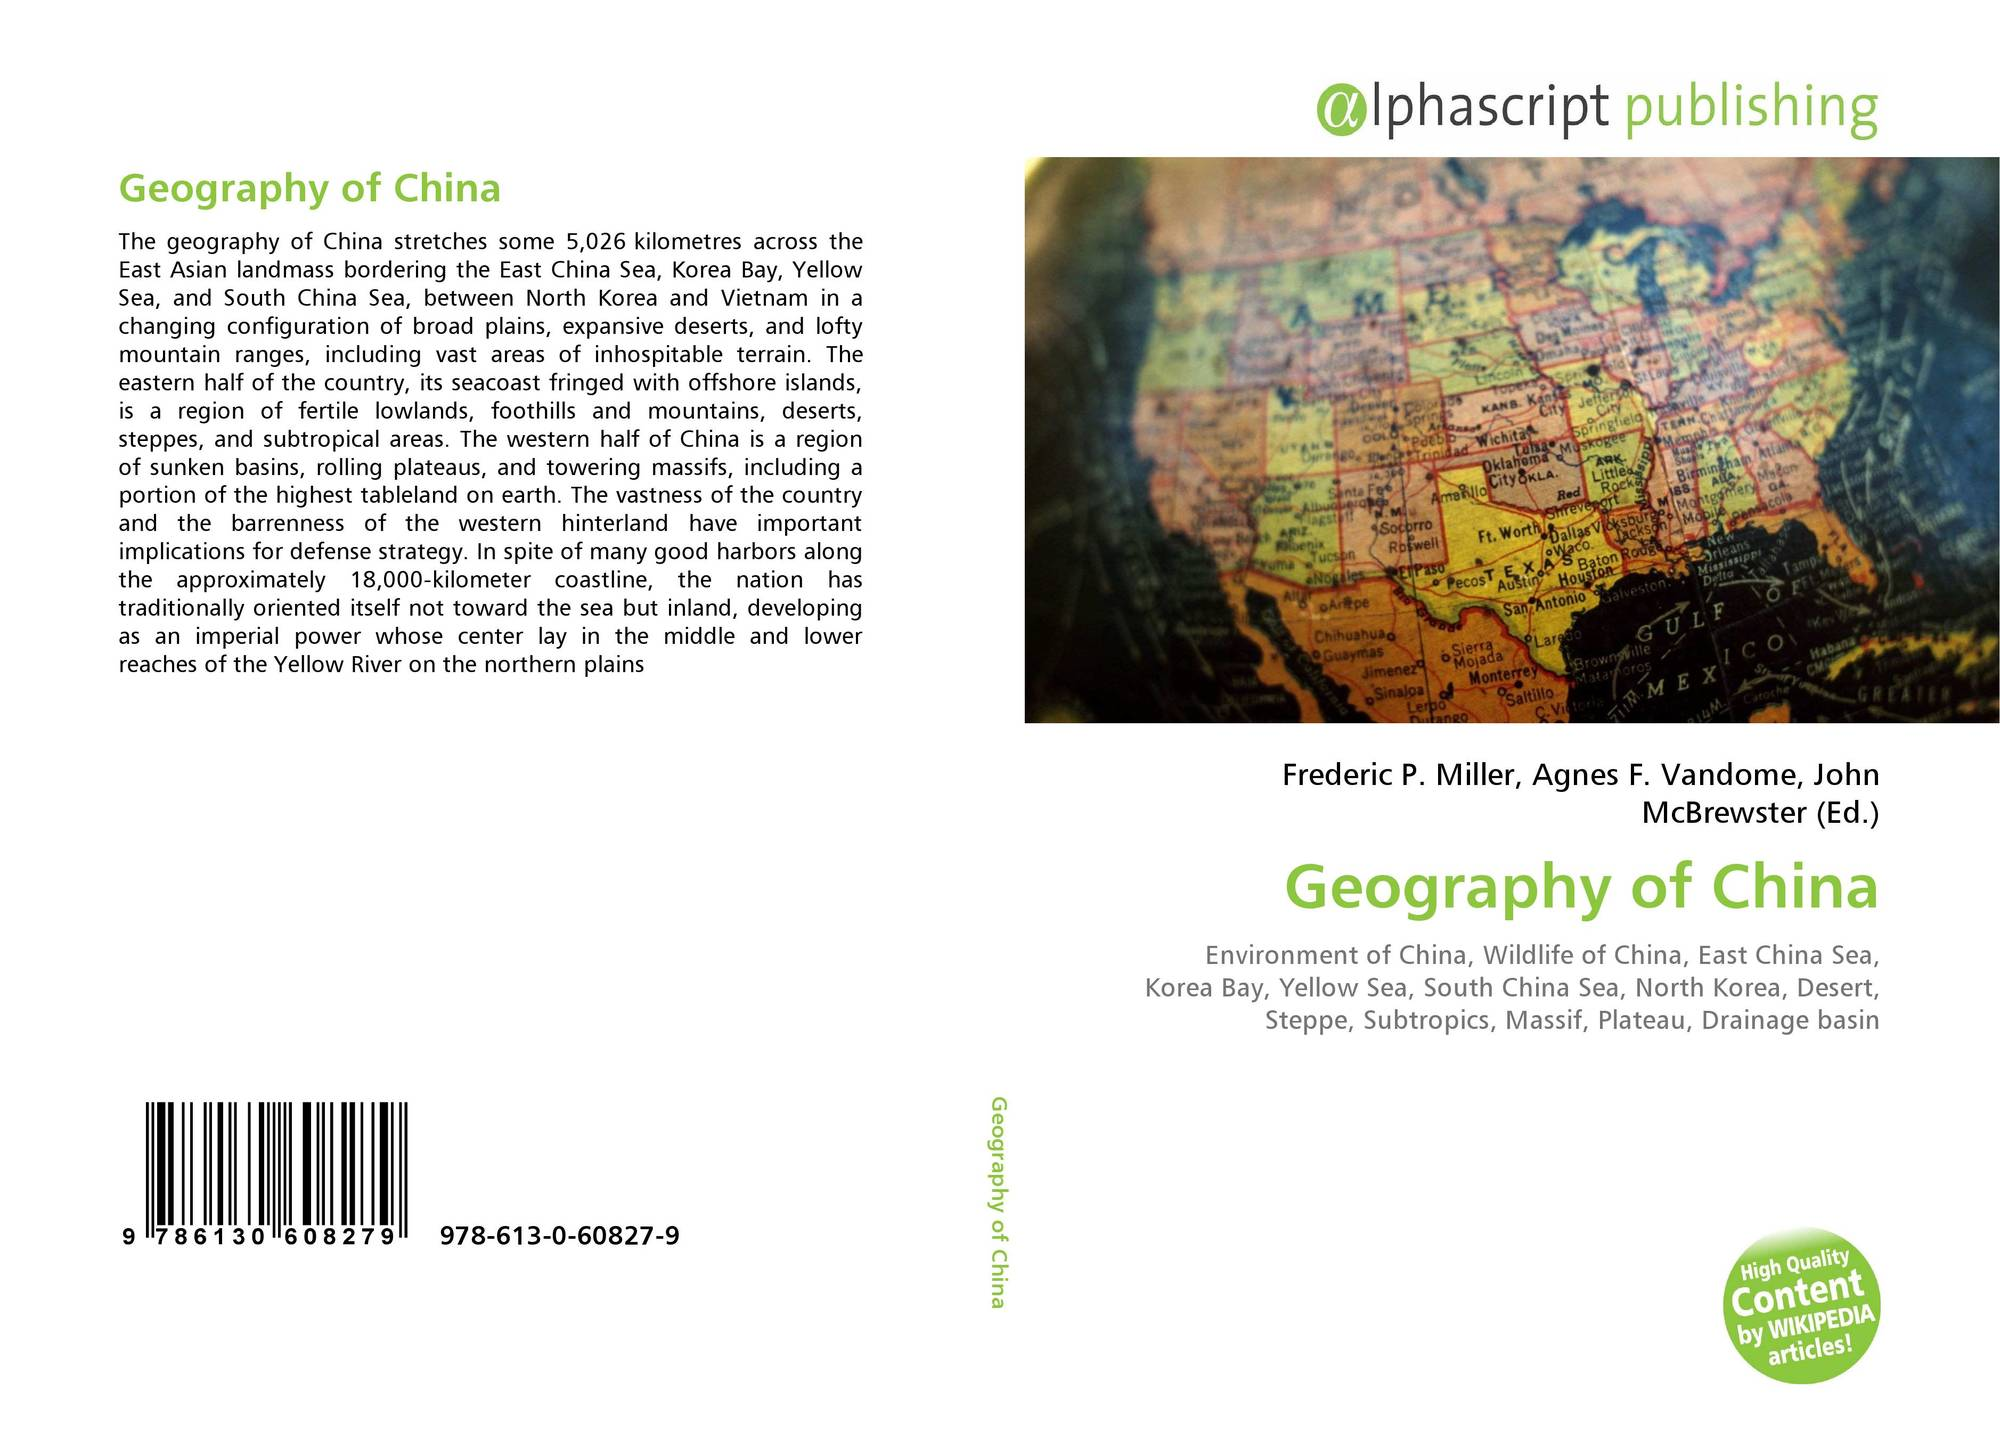 Geography of China, 978-613-0-60827-9, 6130608276 ,9786130608279